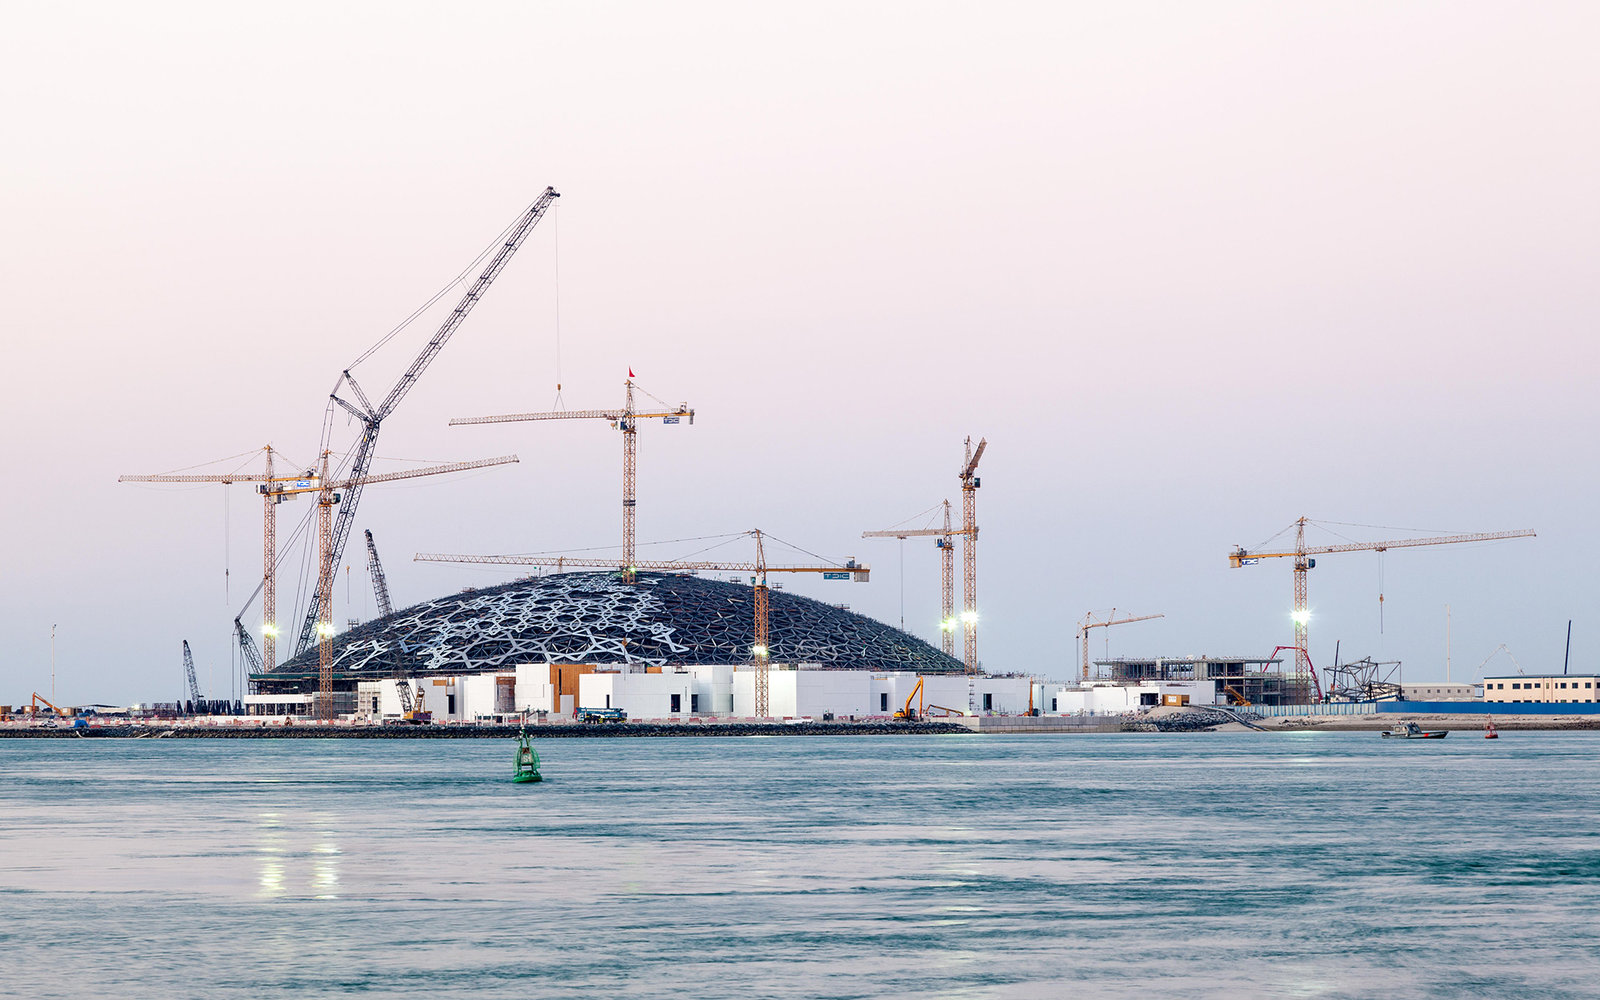 Louvre Abu Dhabi museum construction site at dusk